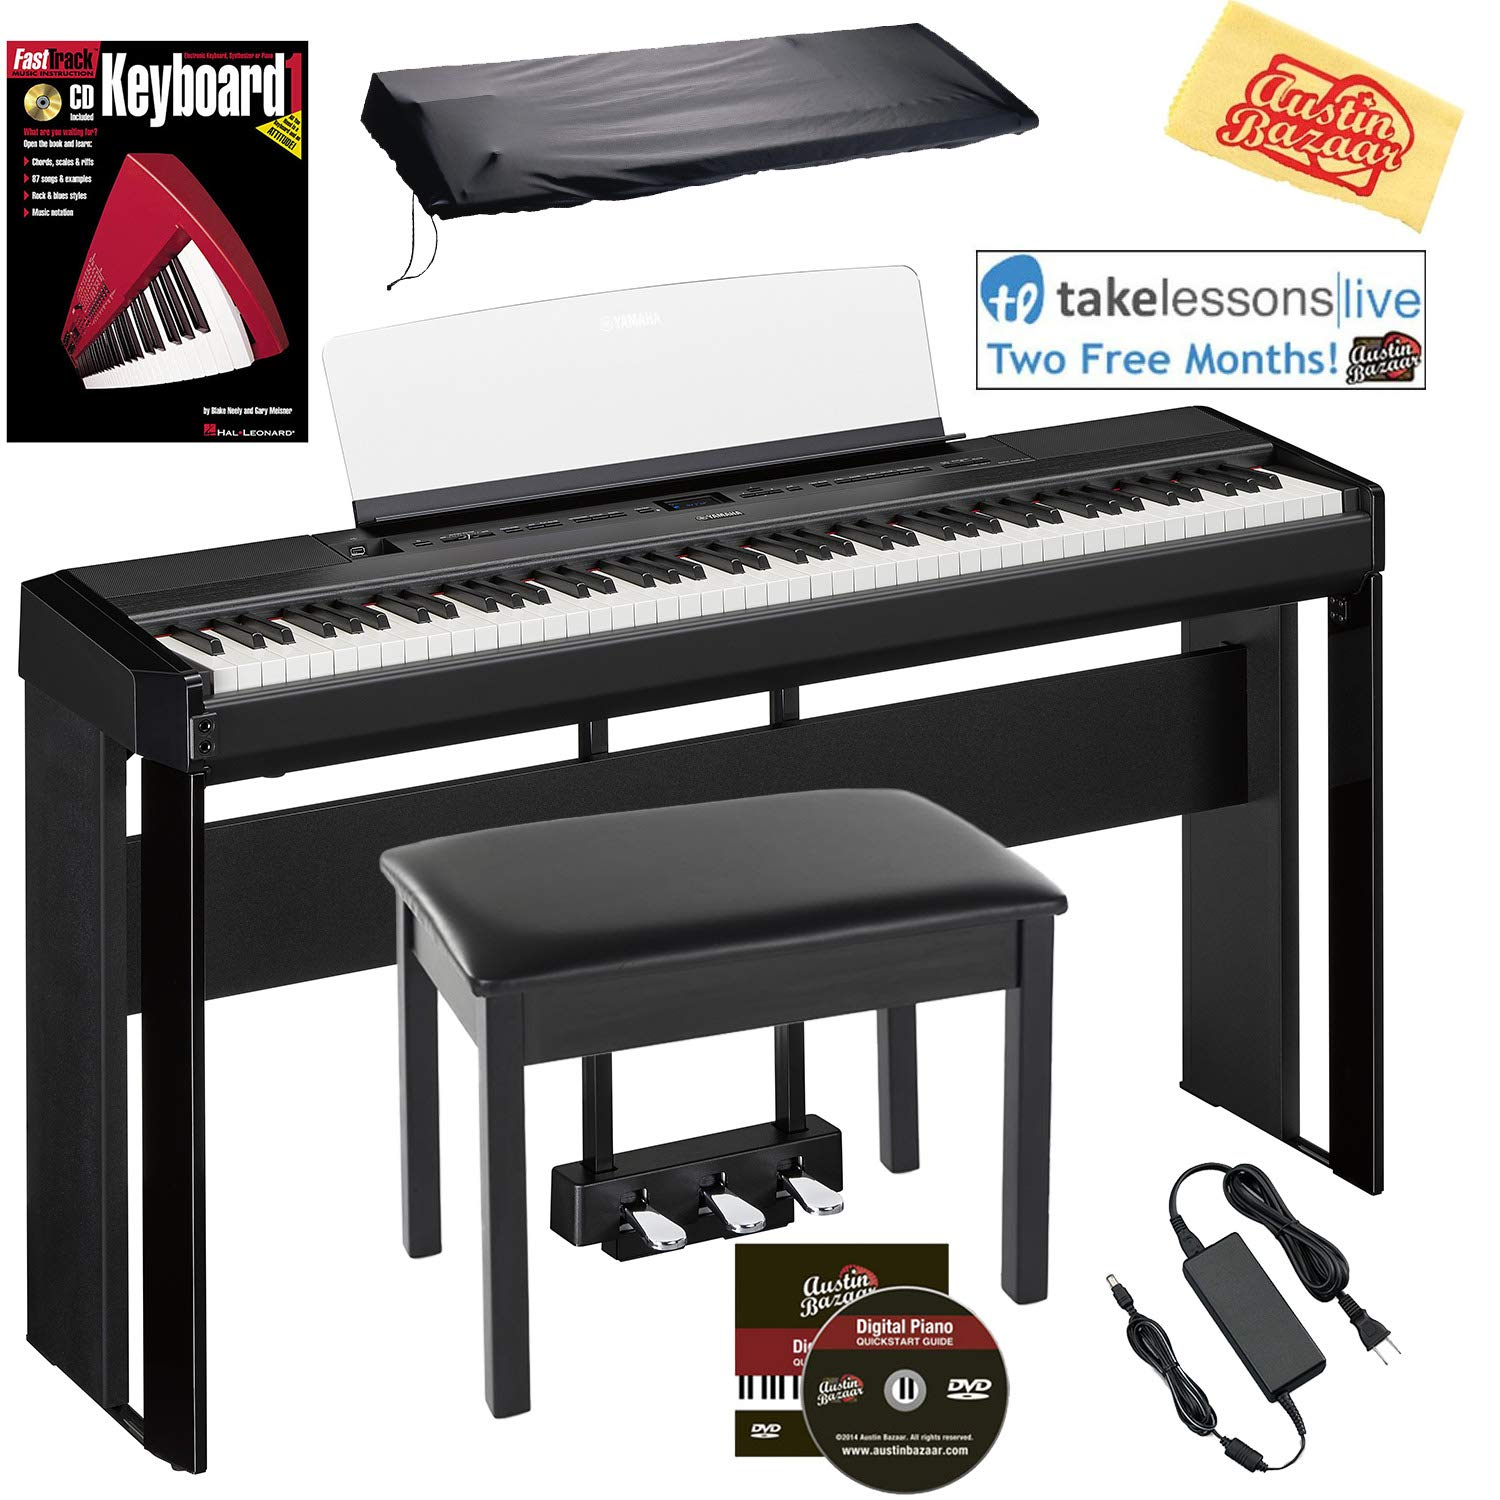 Yamaha P-515 88-Key Digital Piano - Black Bundle with Yamaha L-515 Stand, LP-1 Pedal, Furniture Bench, Dust Cover, Instructional Book, Online Lessons, Austin Bazaar Instructional DVD, and Polish Cloth by Yamaha